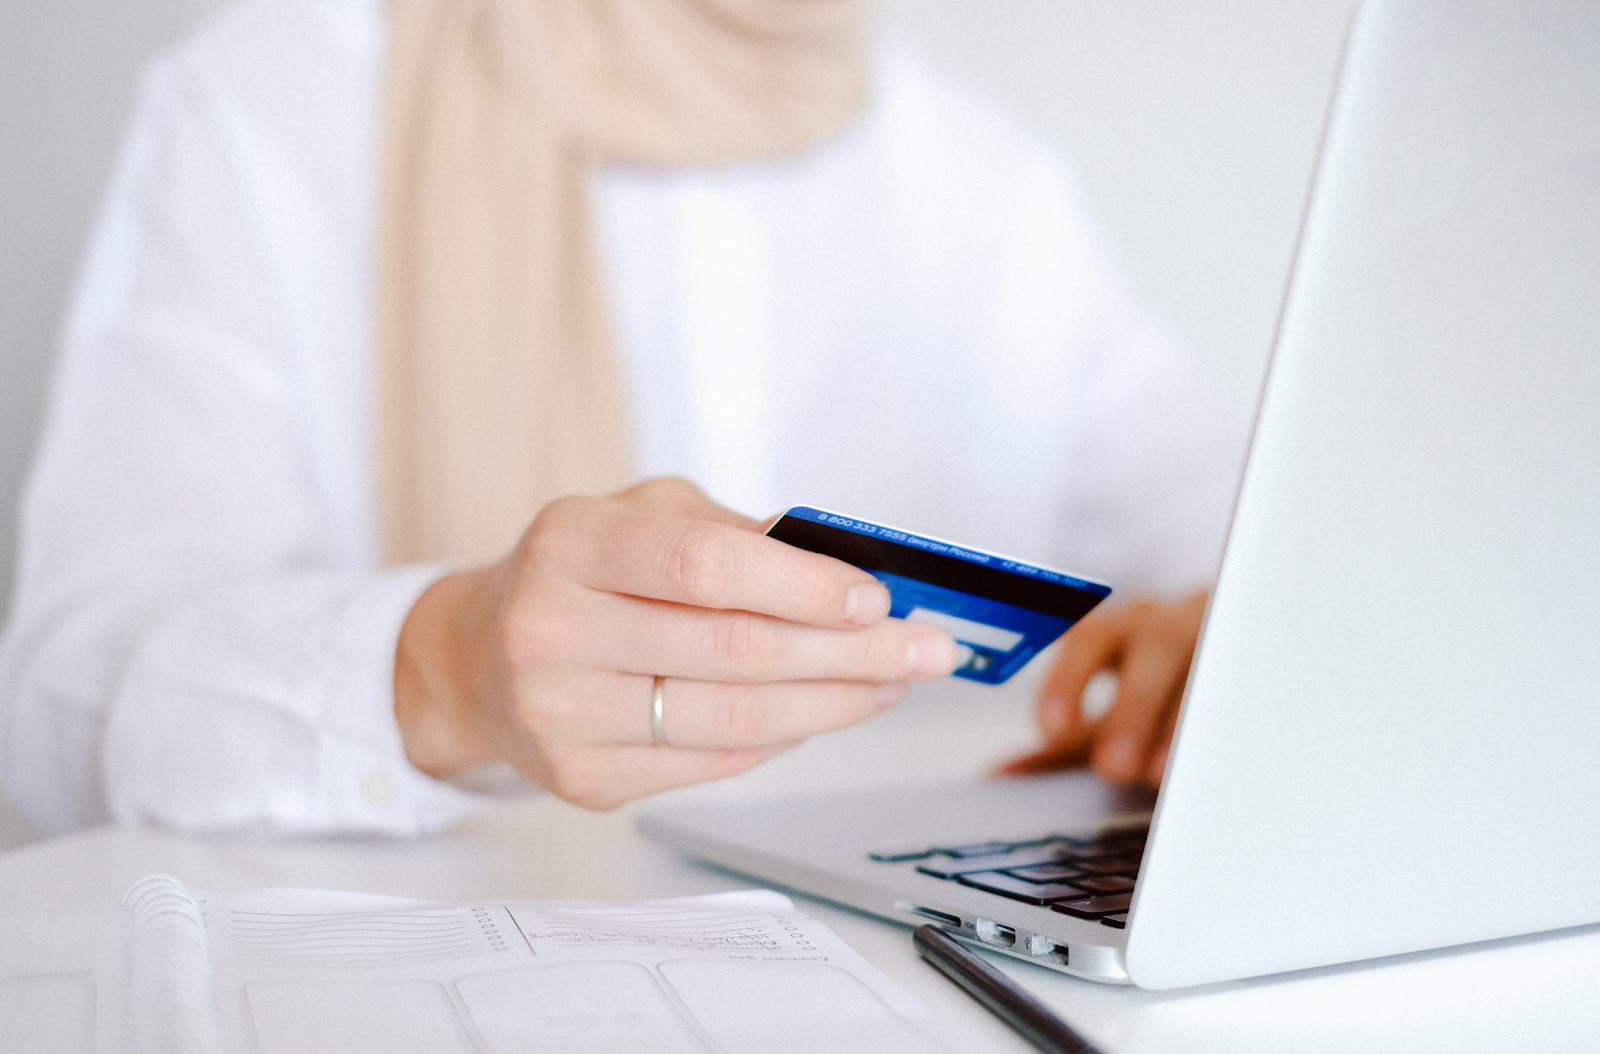 the most popular online payment options for small businesses in Singapore